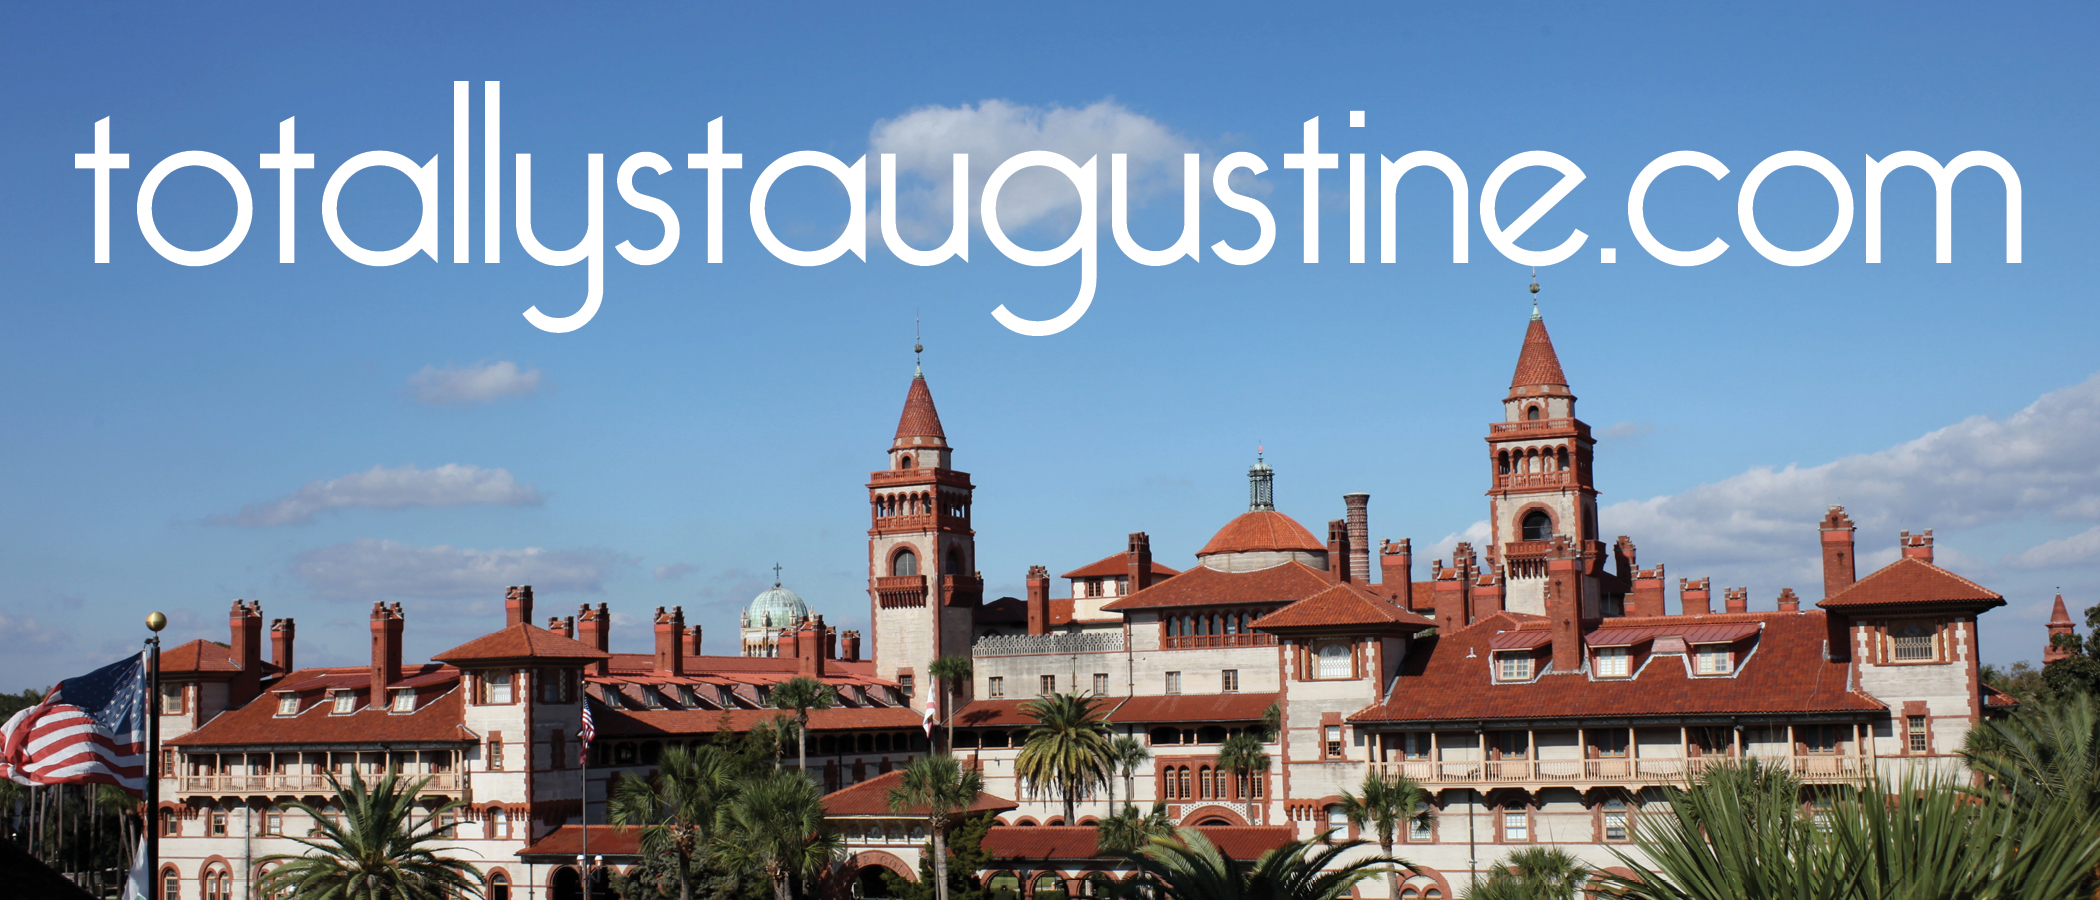 Totally St. Augustine - Things to do in St. Augustine, Florida